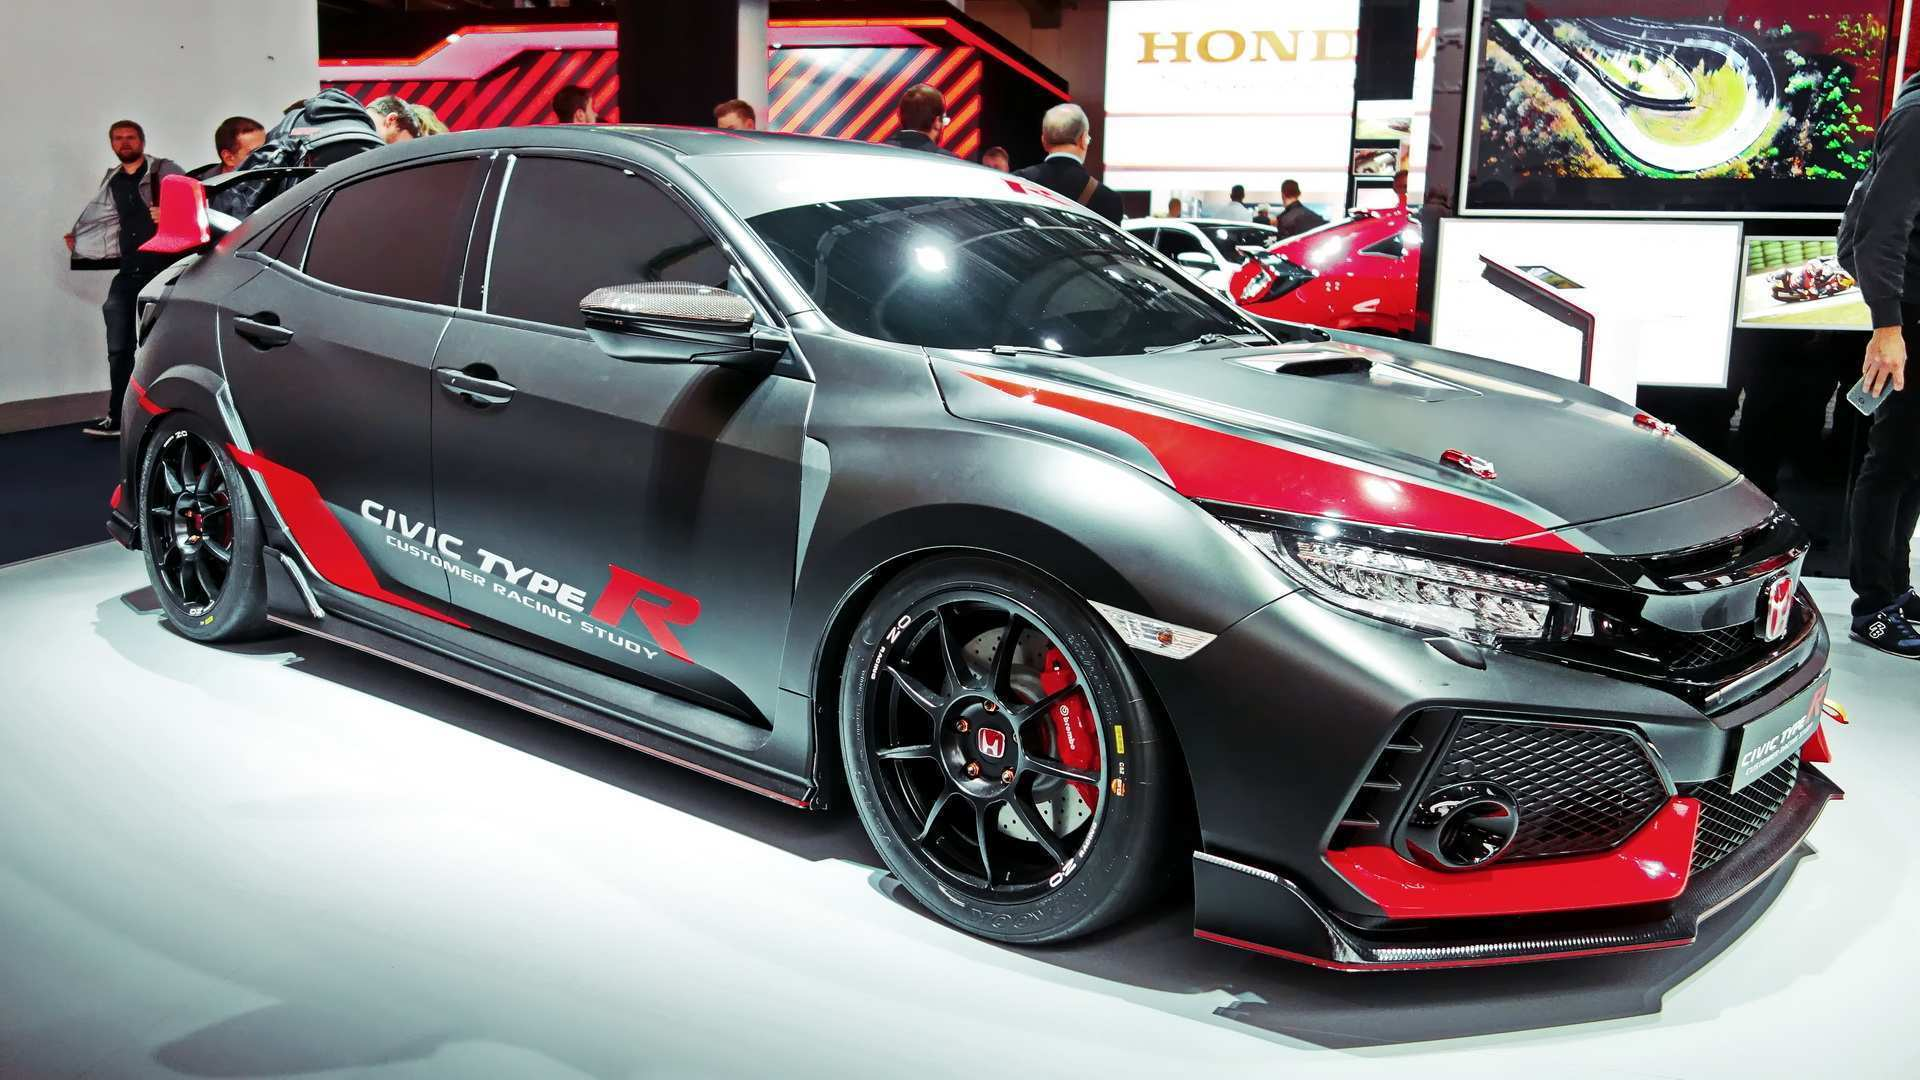 44 The Best 2019 Honda Civic Type R Pictures